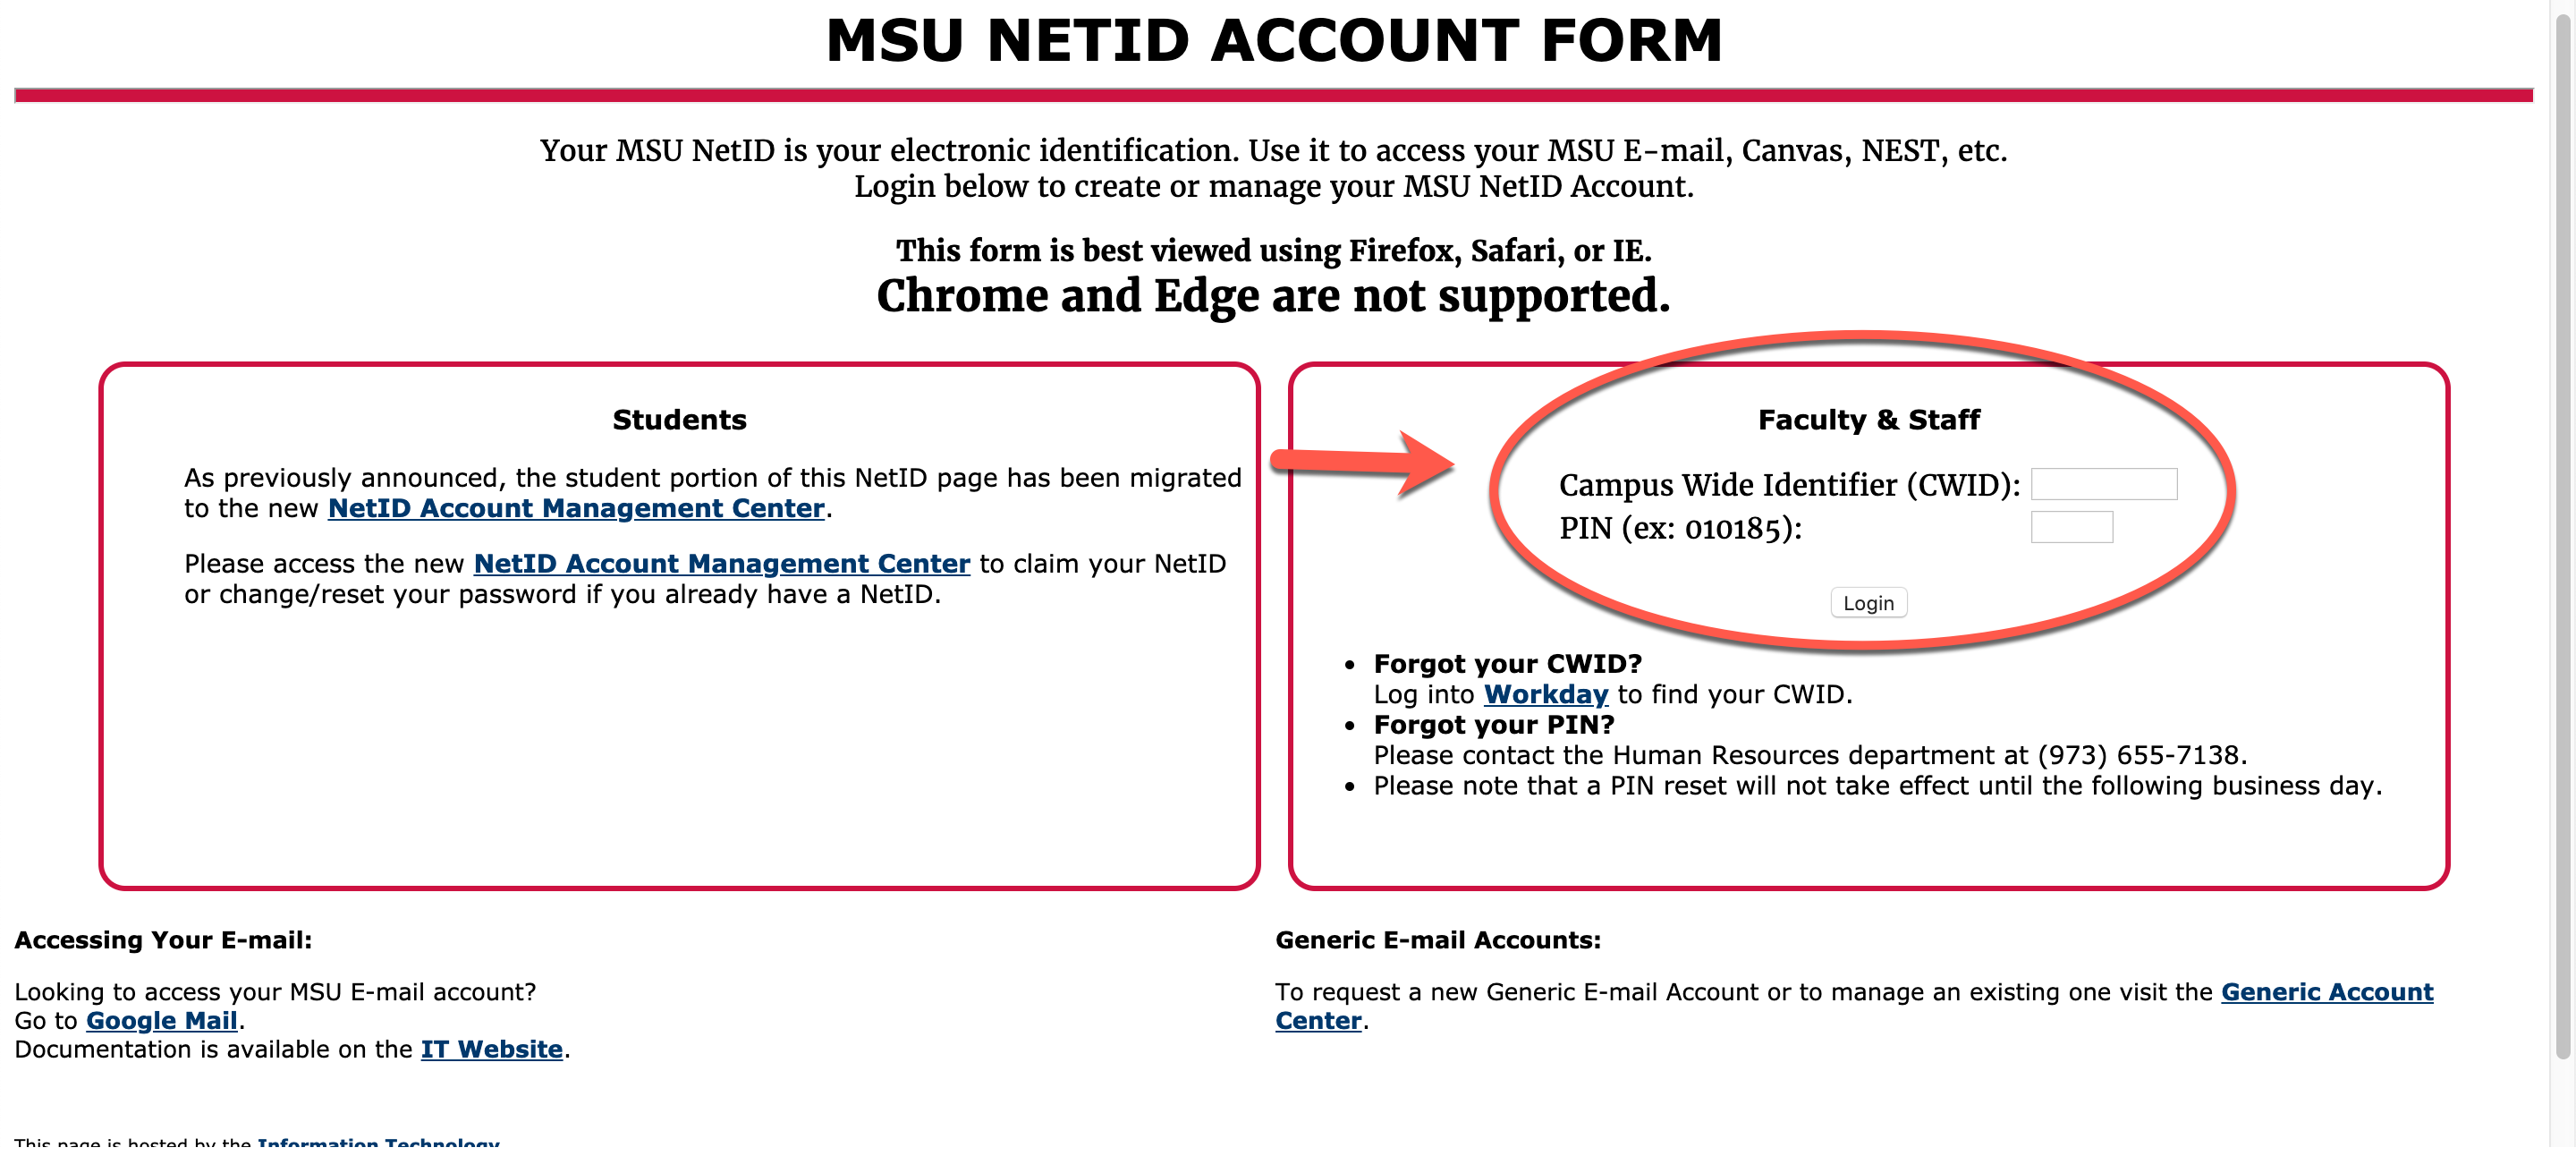 Netid form screenshot with faculty and staff highlighted